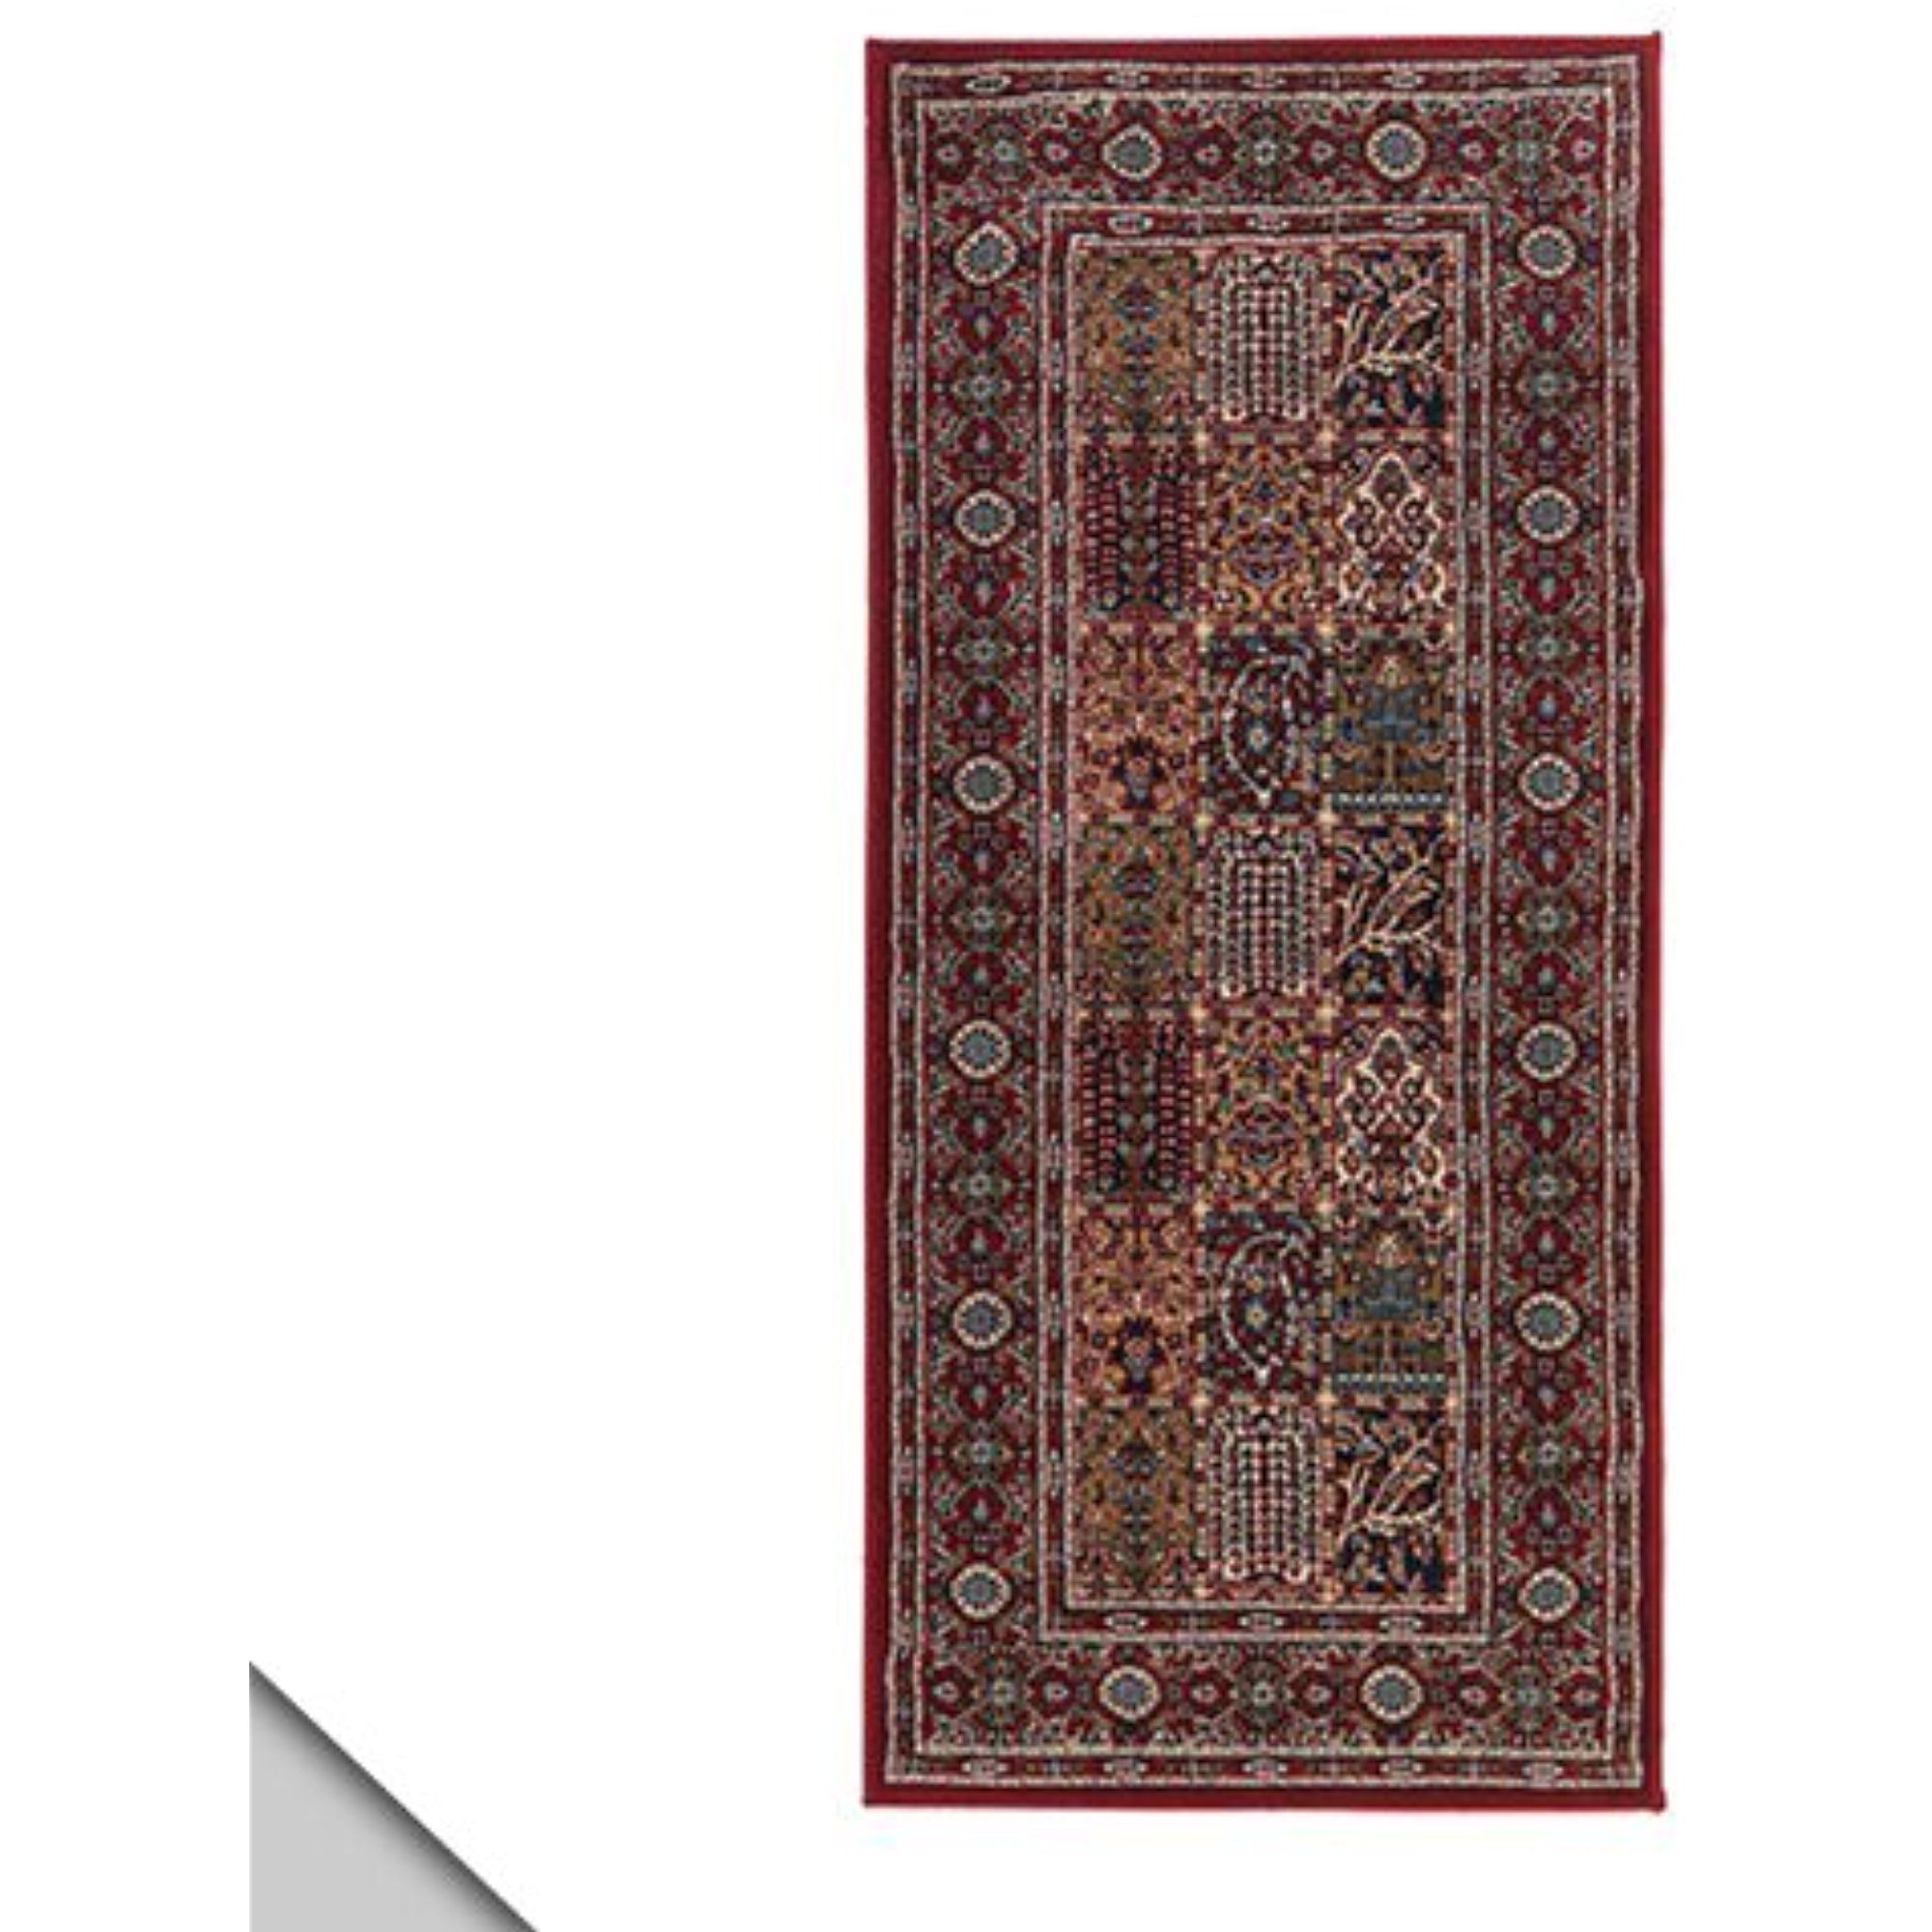 Ikea Valby Ruta Rug Low Pile Runner Multicolor Traditional